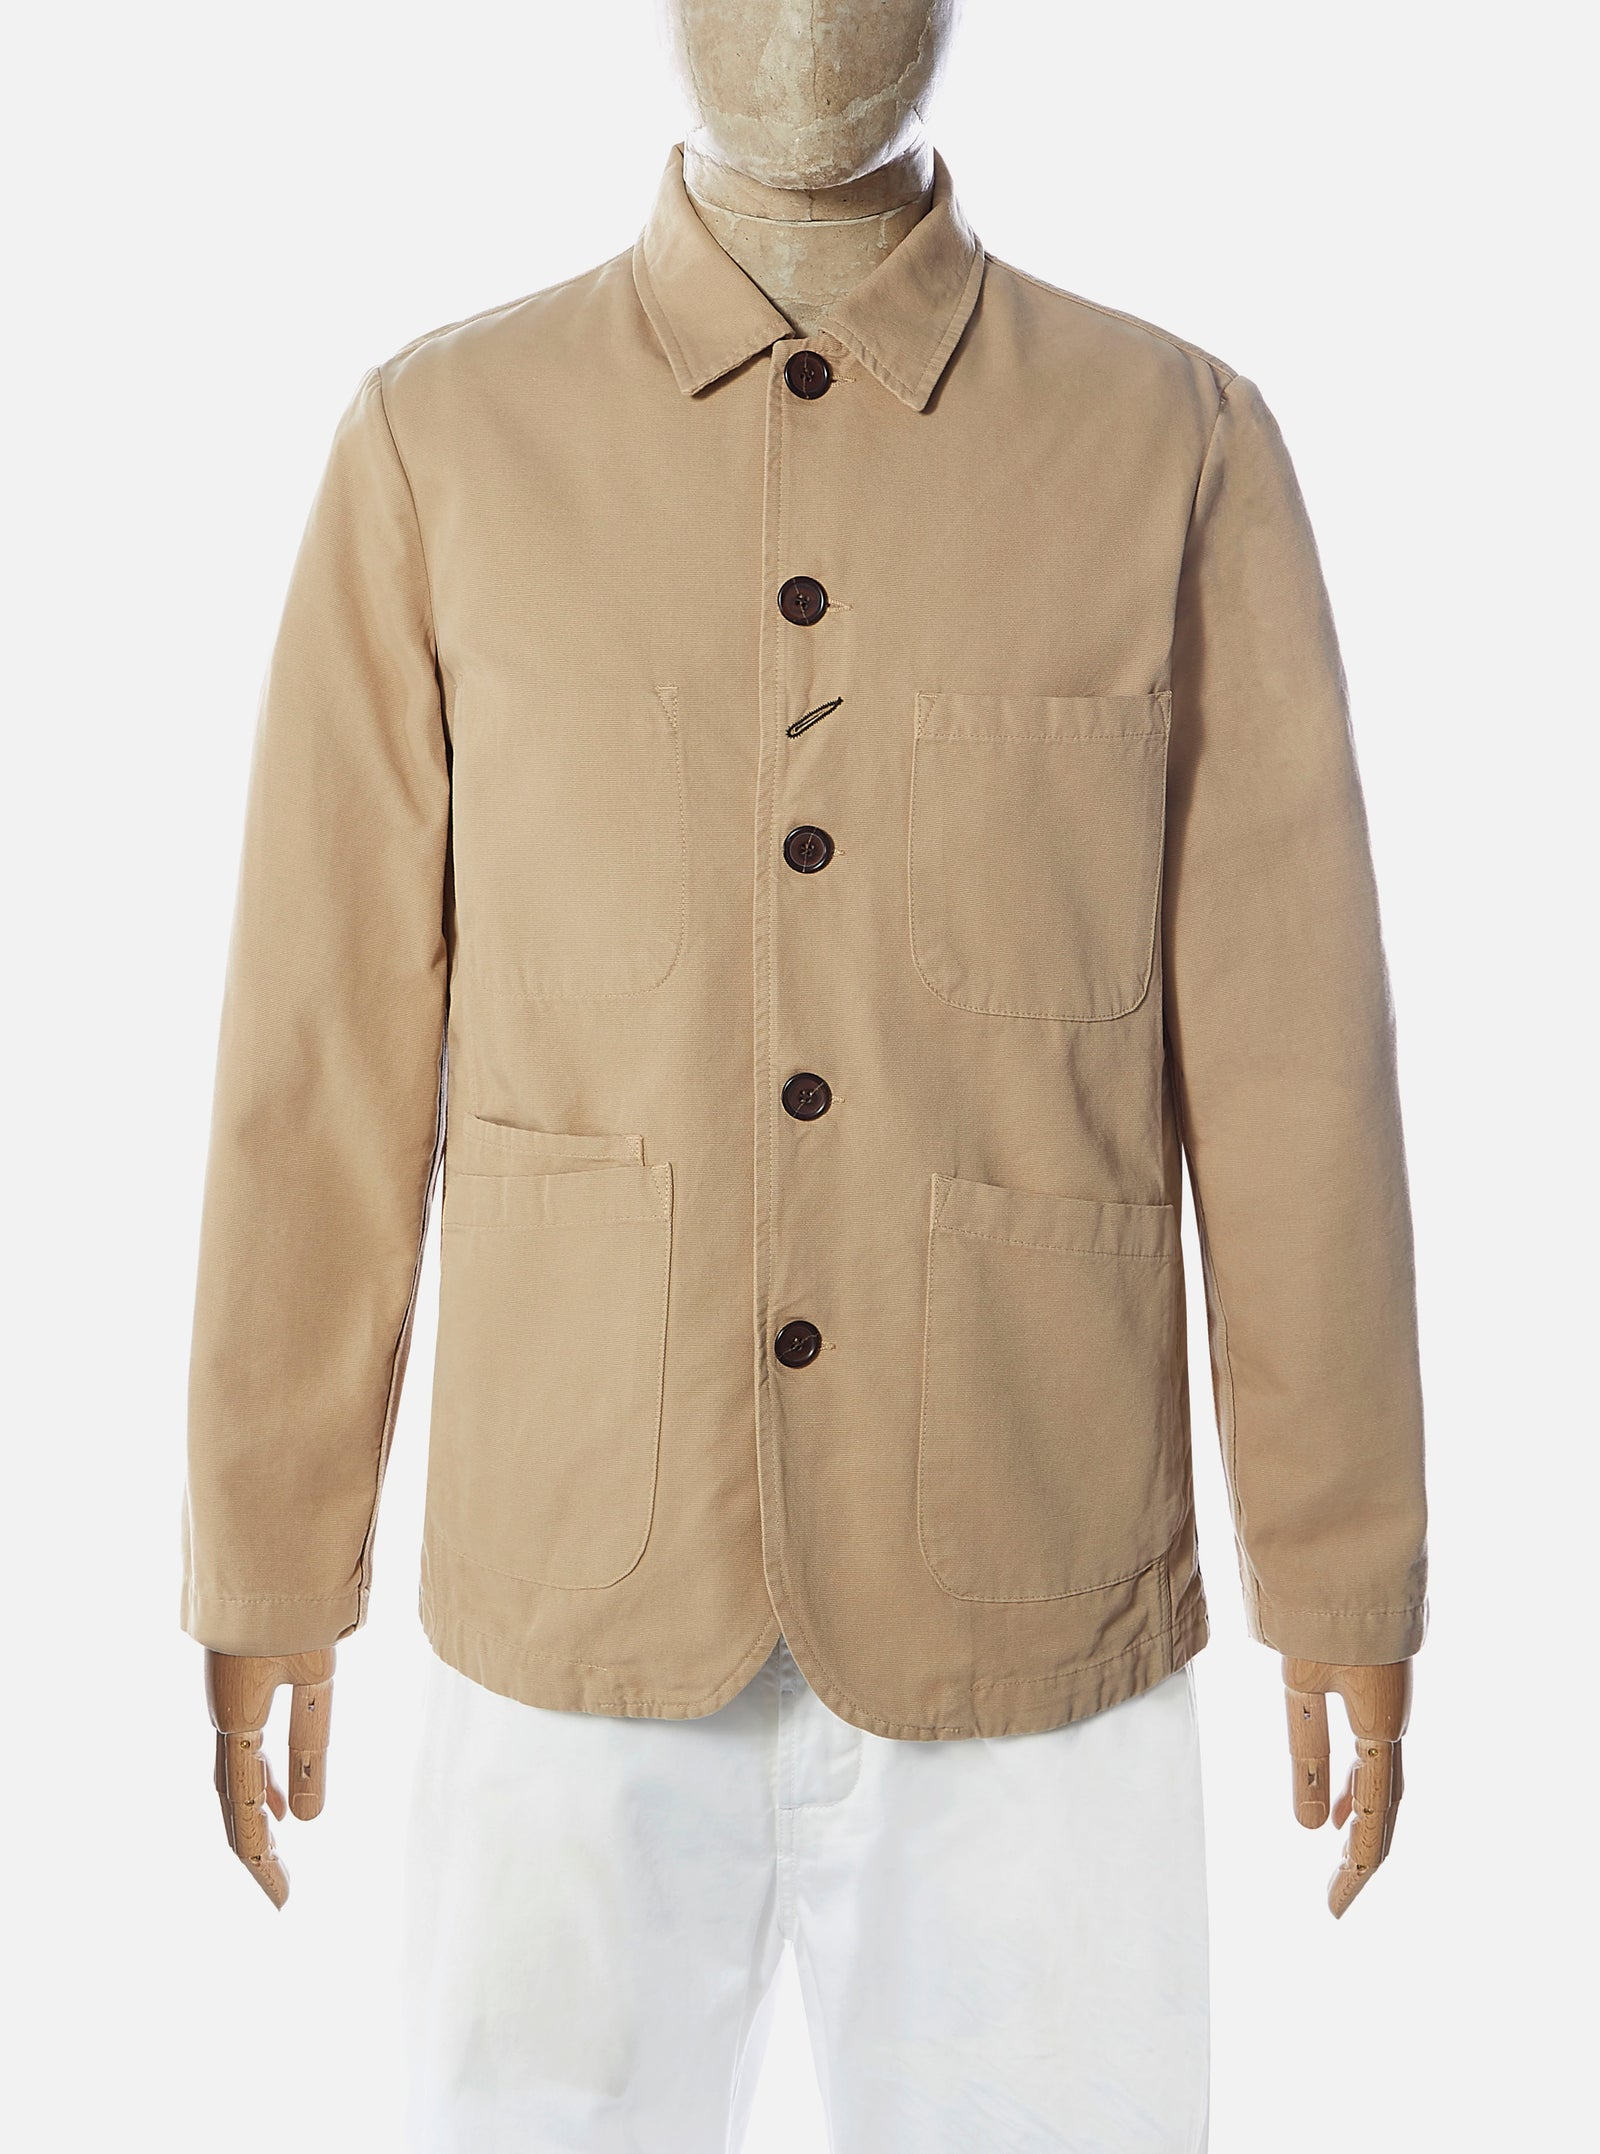 Universal Works Bakers Jacket in Sand Canvas